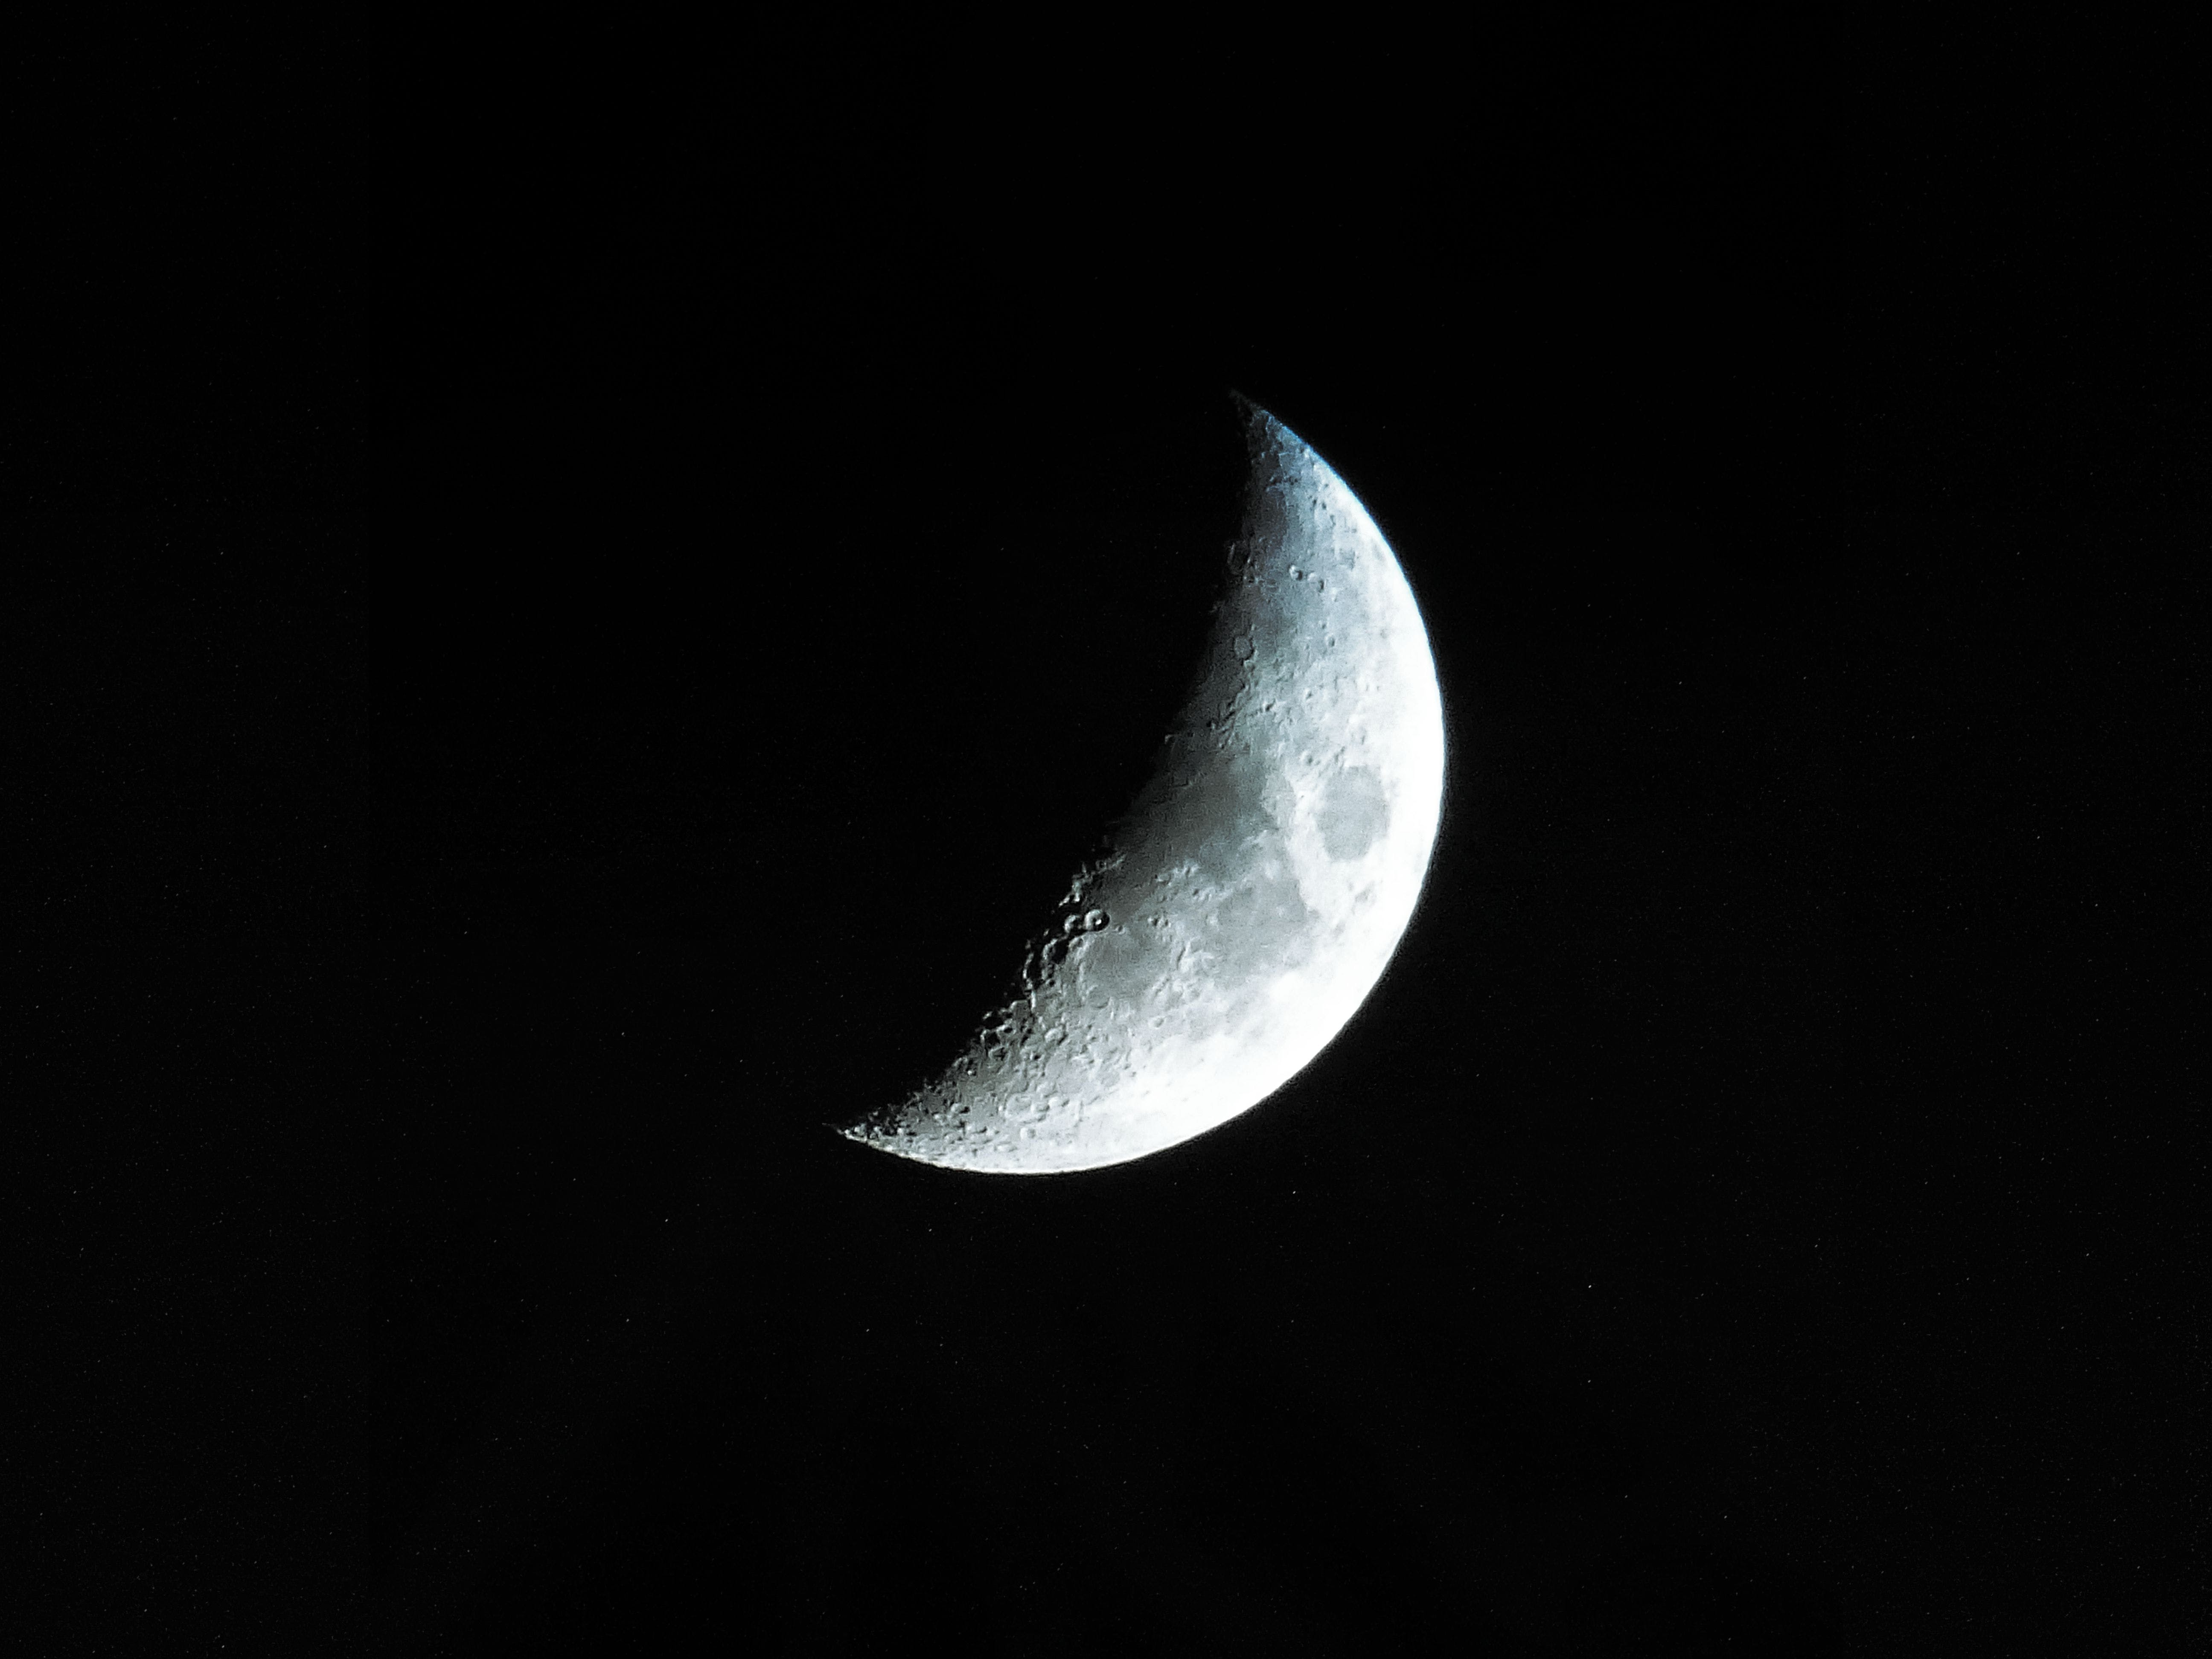 Half Moon at Nighttime